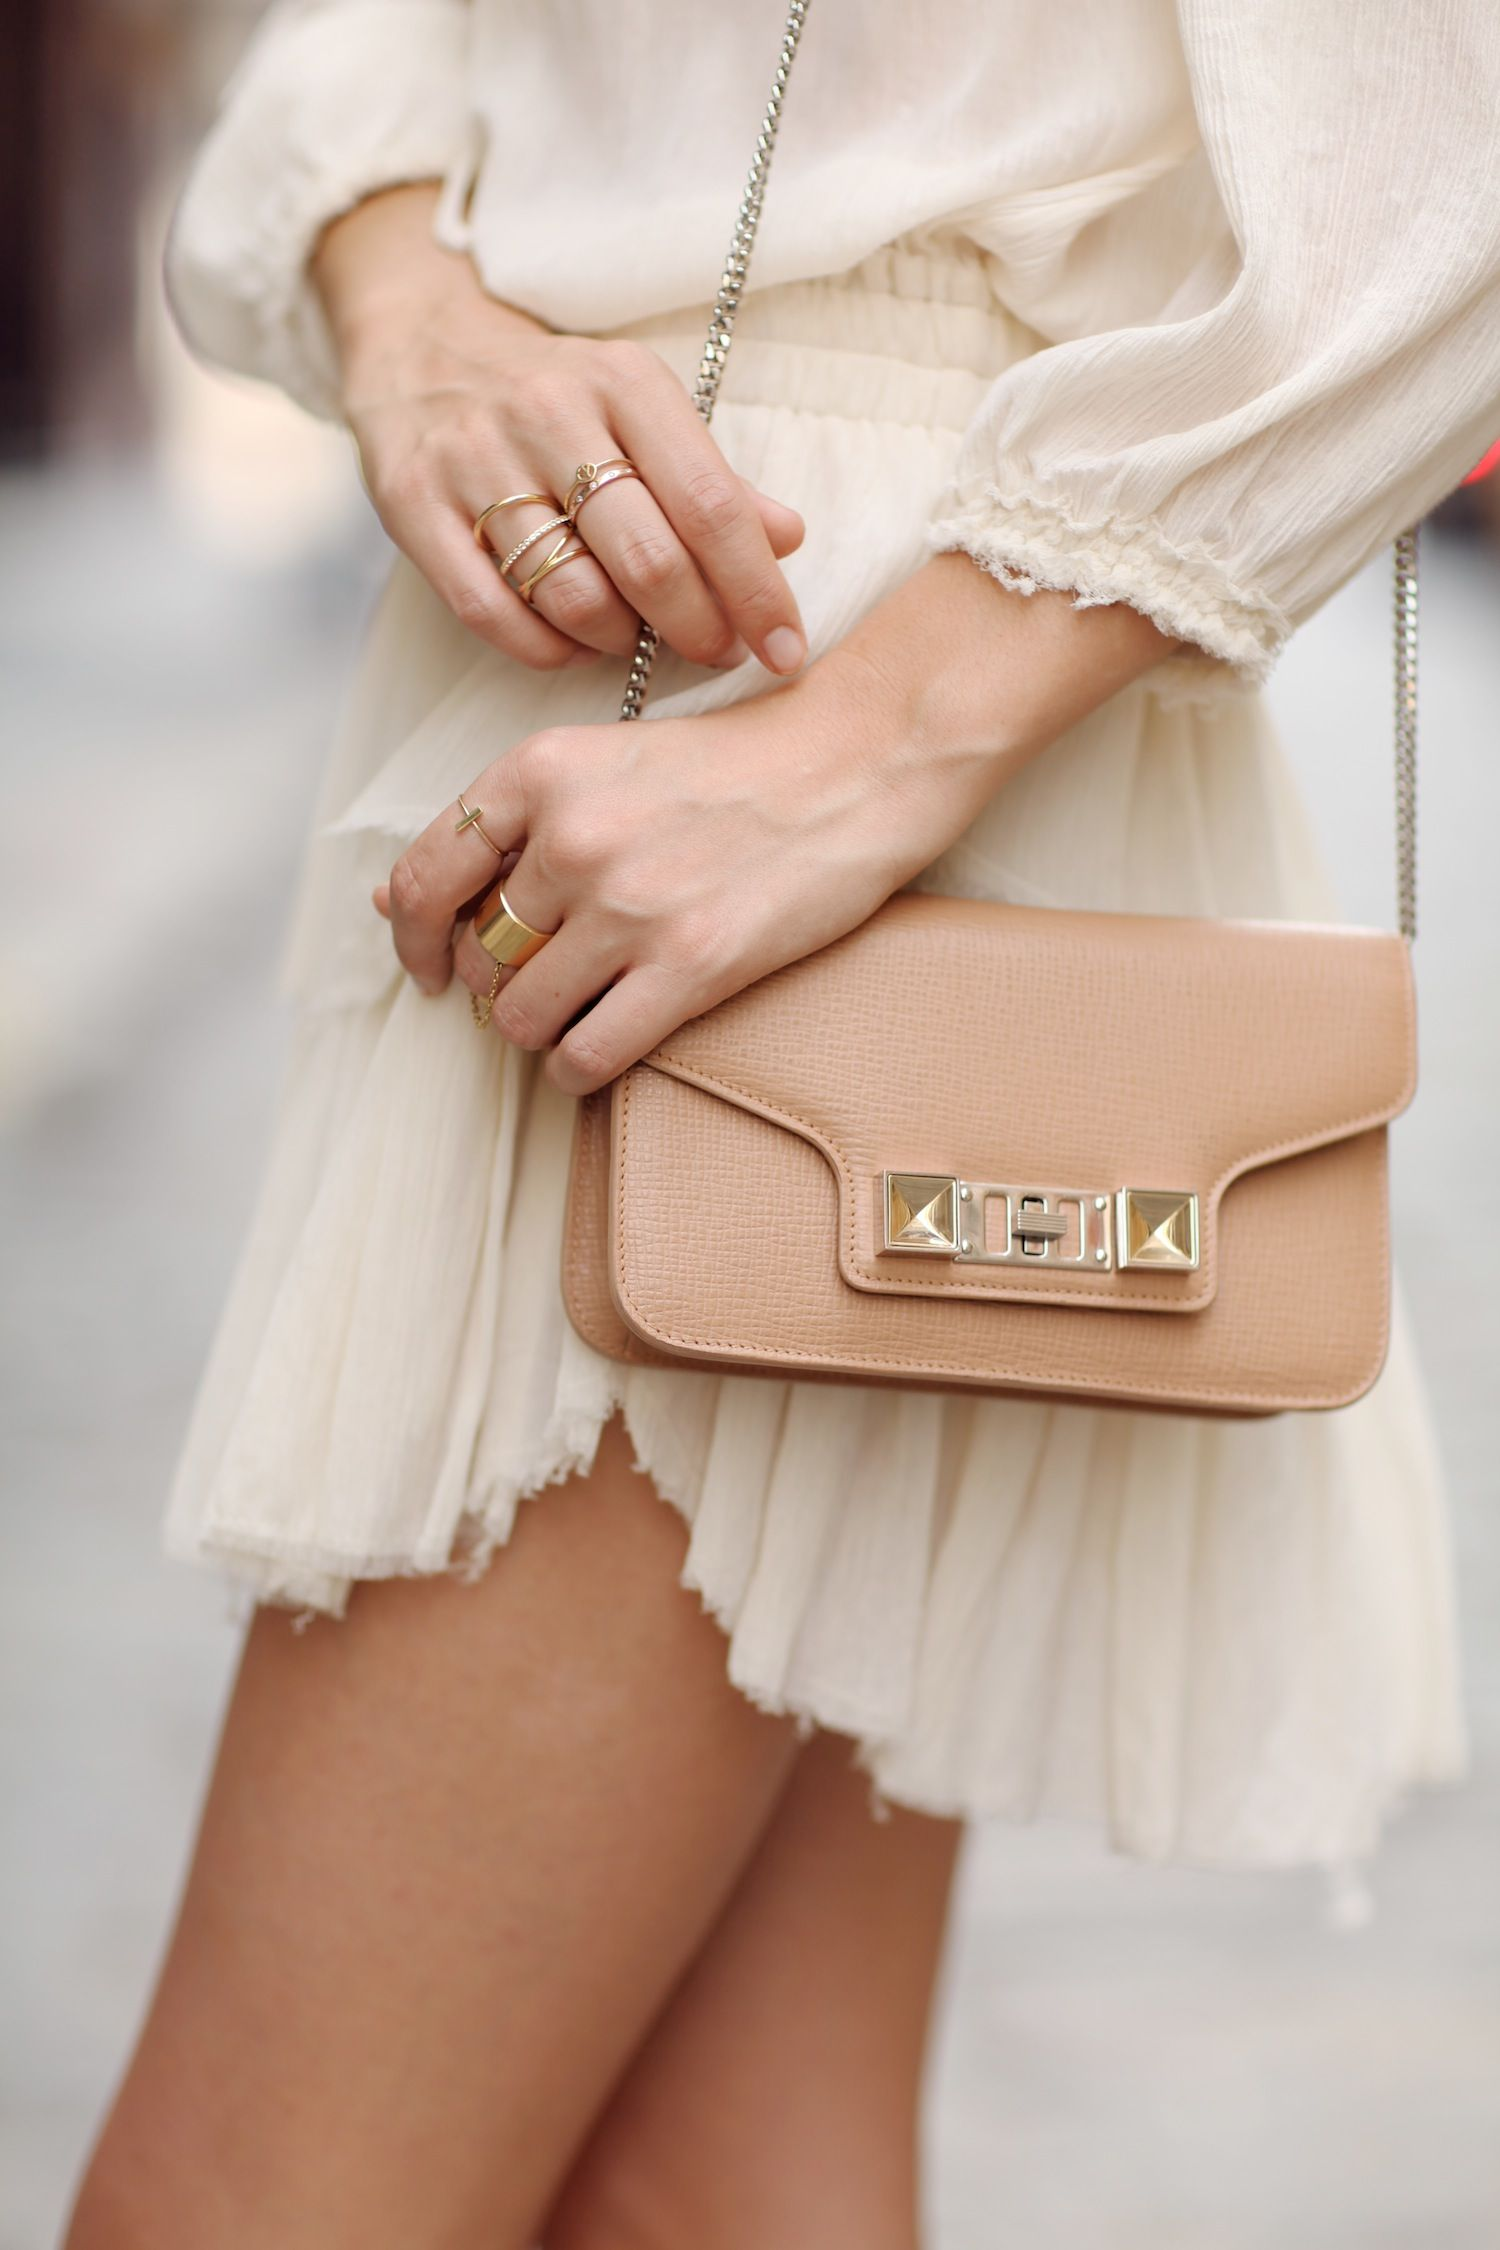 Off-white and nude